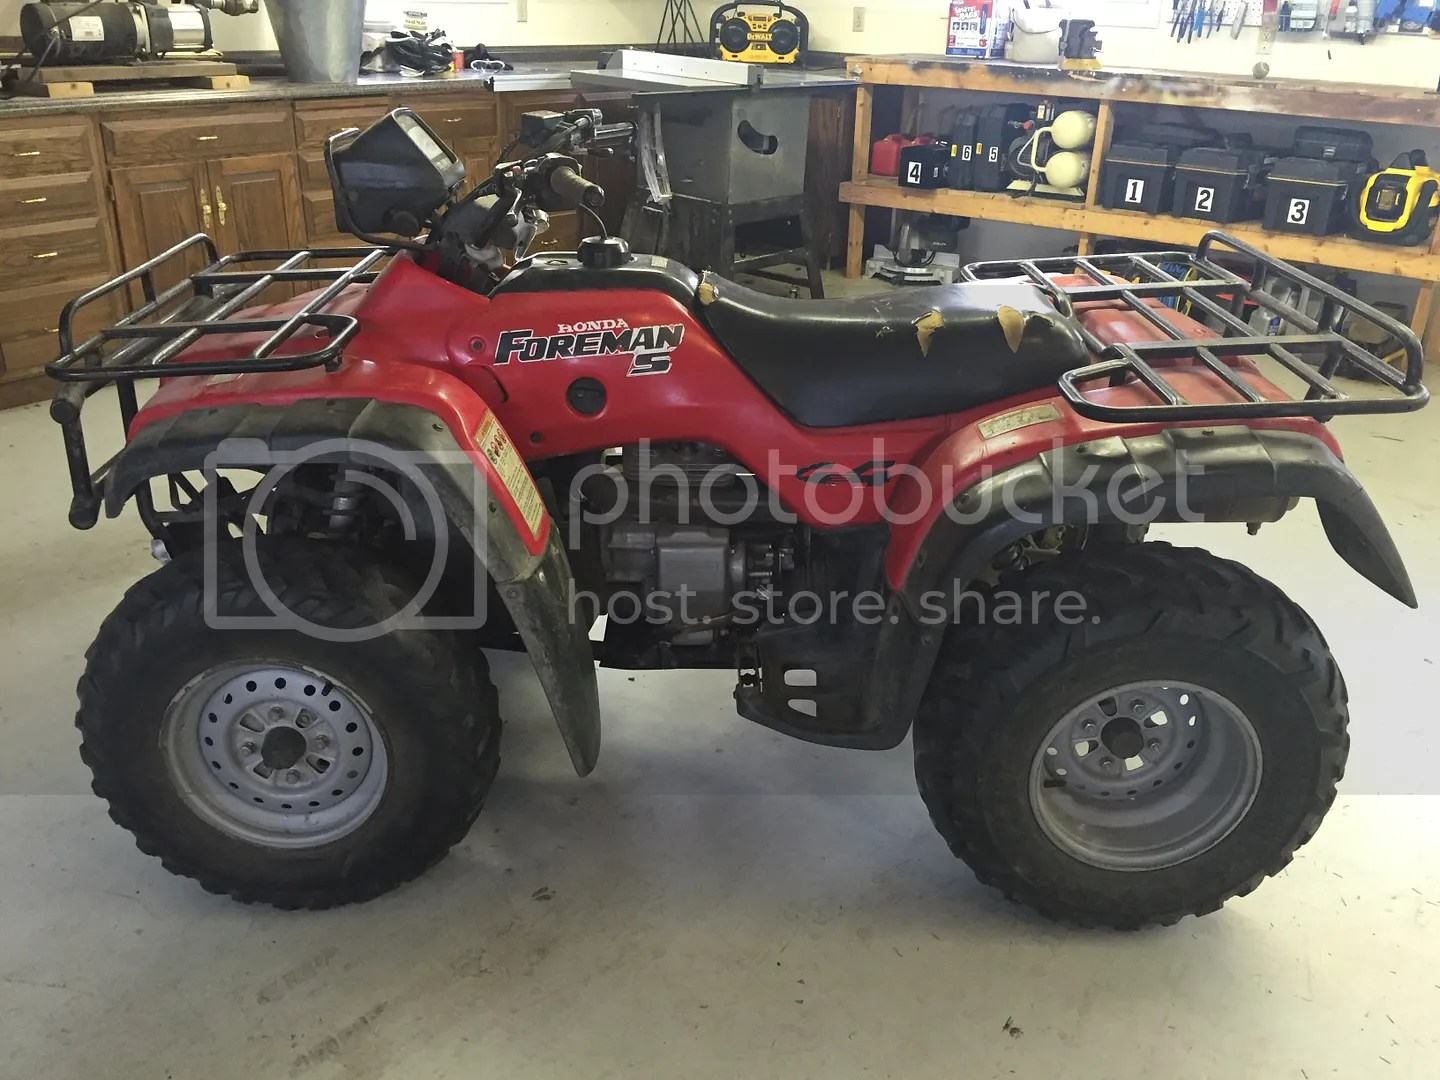 hight resolution of wrg 5461 wiring diagram for a 1985 honda foreman 400 wiring diagram for a 1985 honda foreman 400